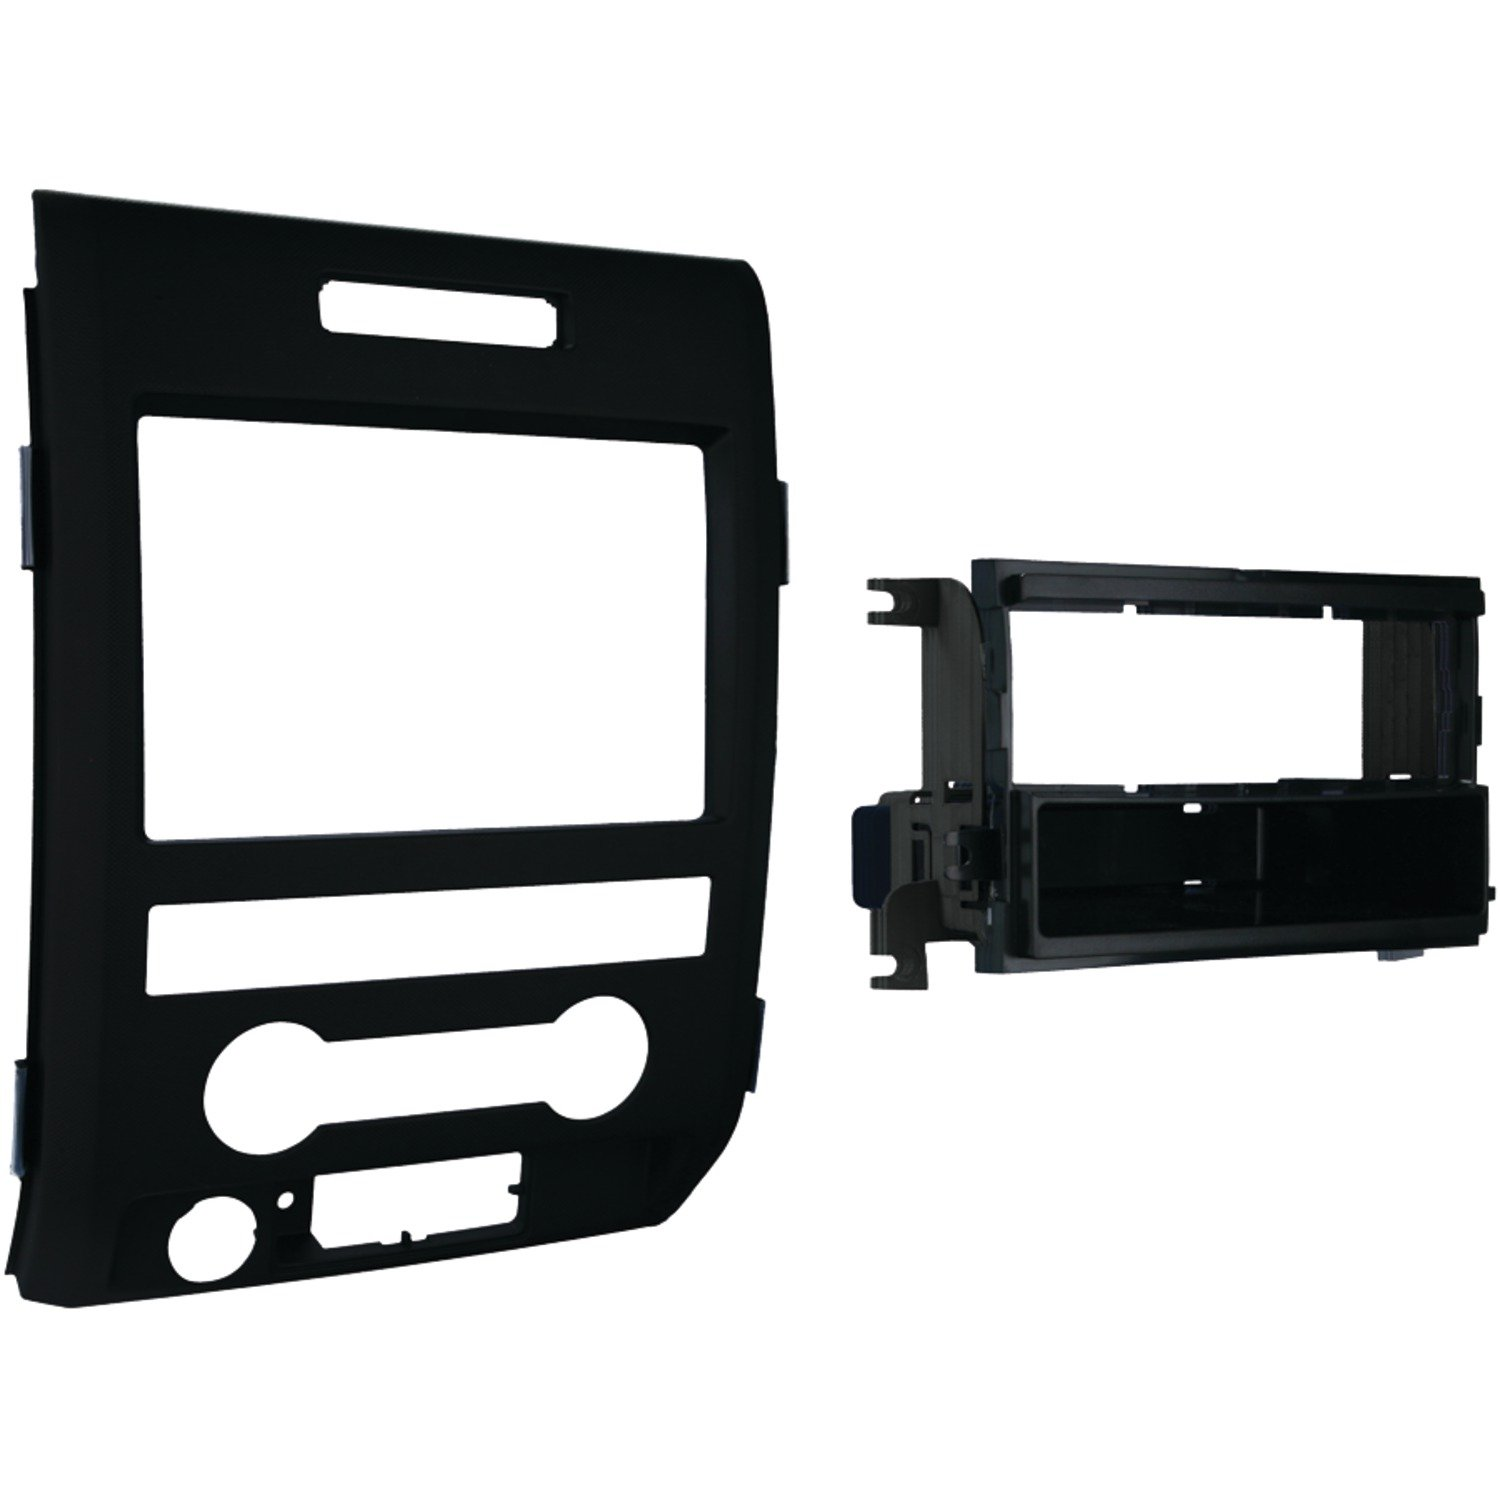 61EJfEsElrL._SL1500_ amazon com metra 99 5820b single din installation dash kit for Dash Kit for F150 at honlapkeszites.co